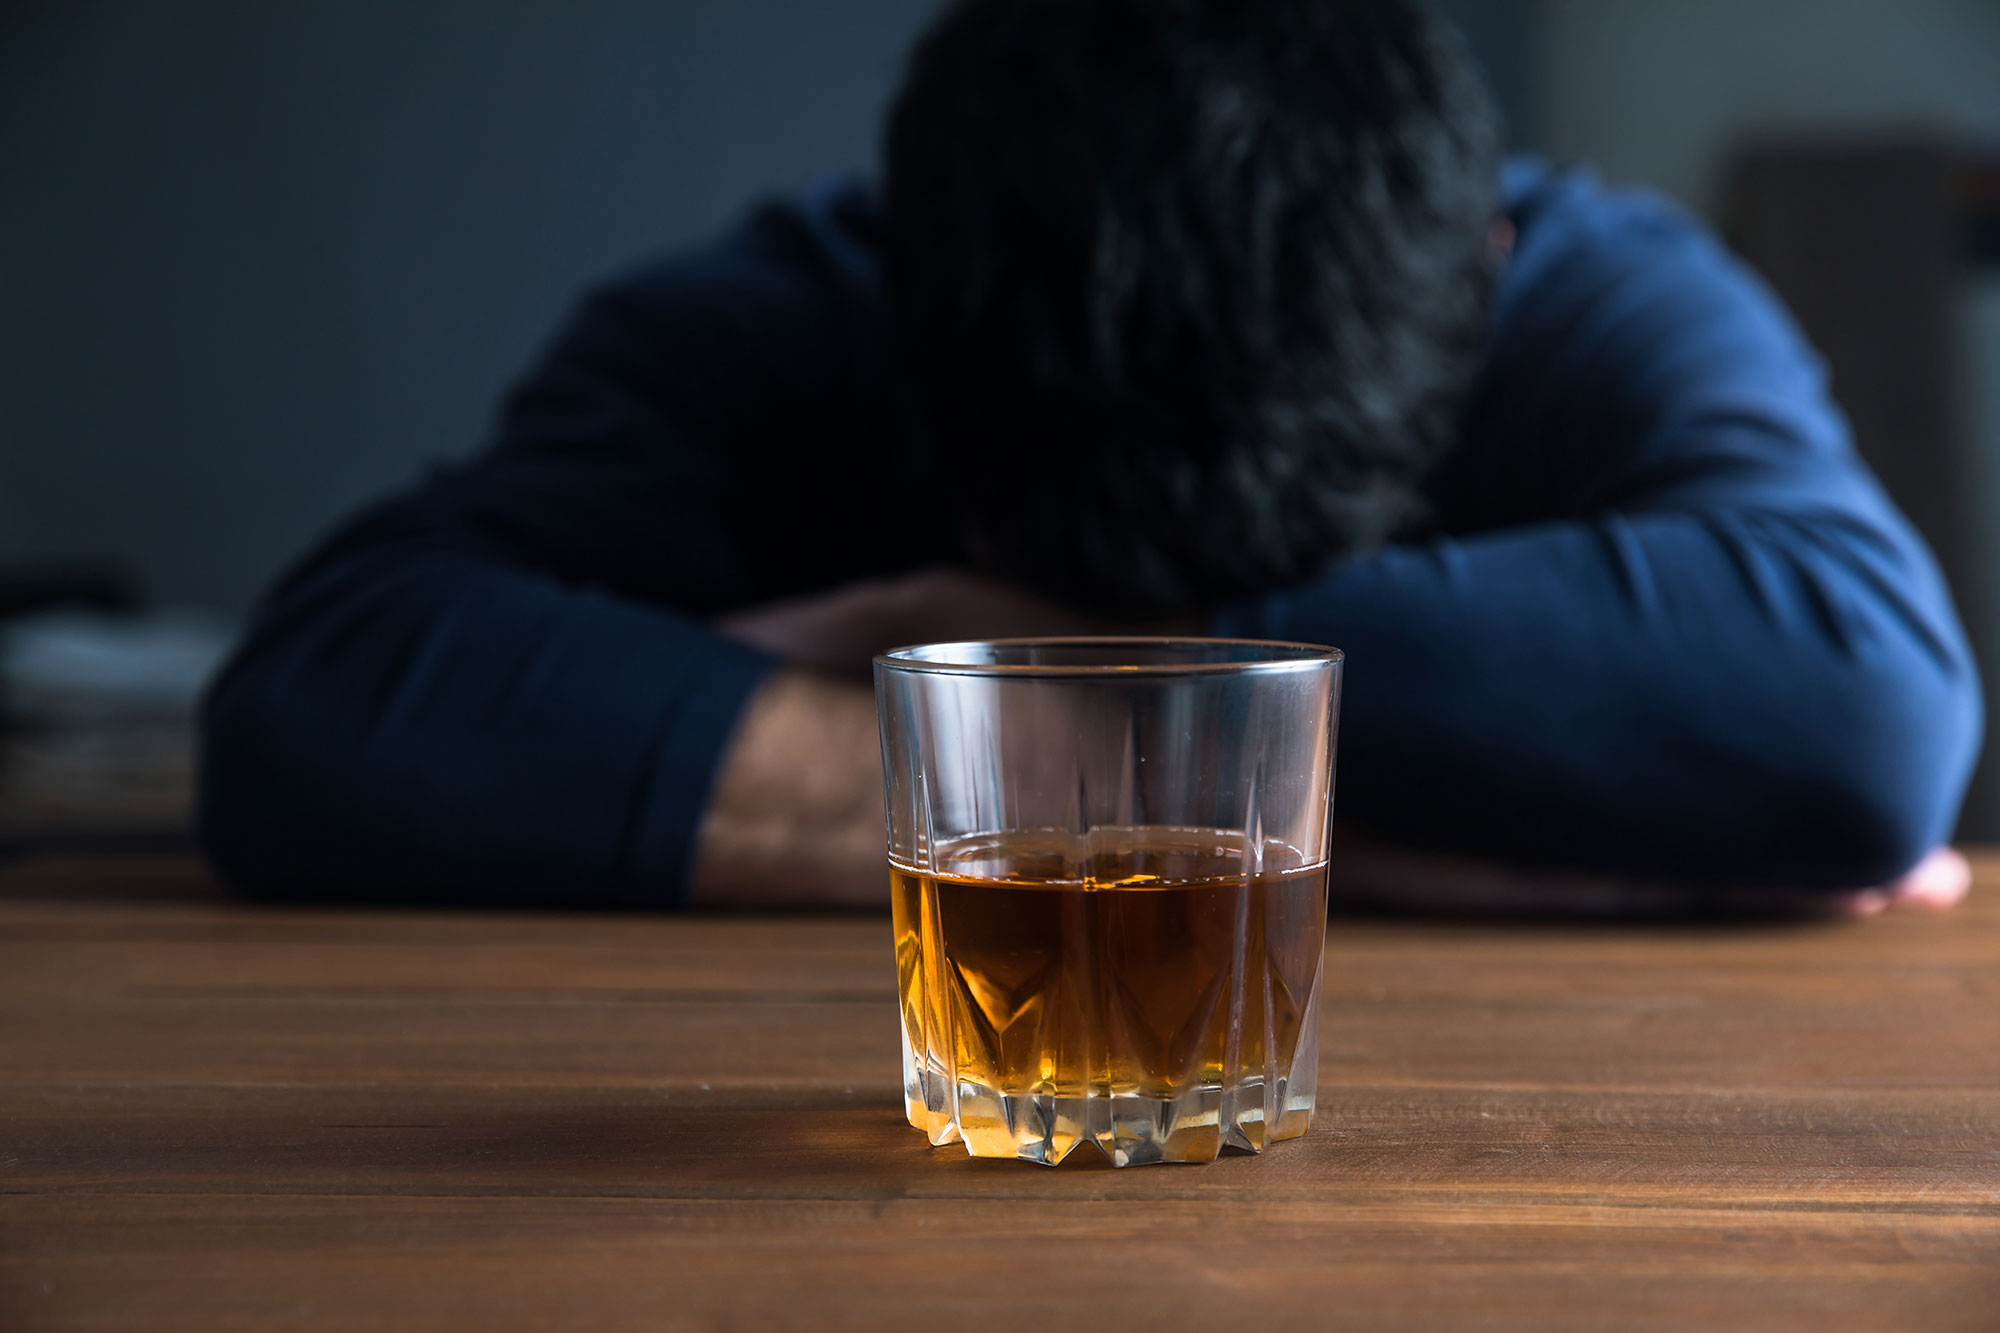 What Are 10 Things That Alcohol Does to the Body?